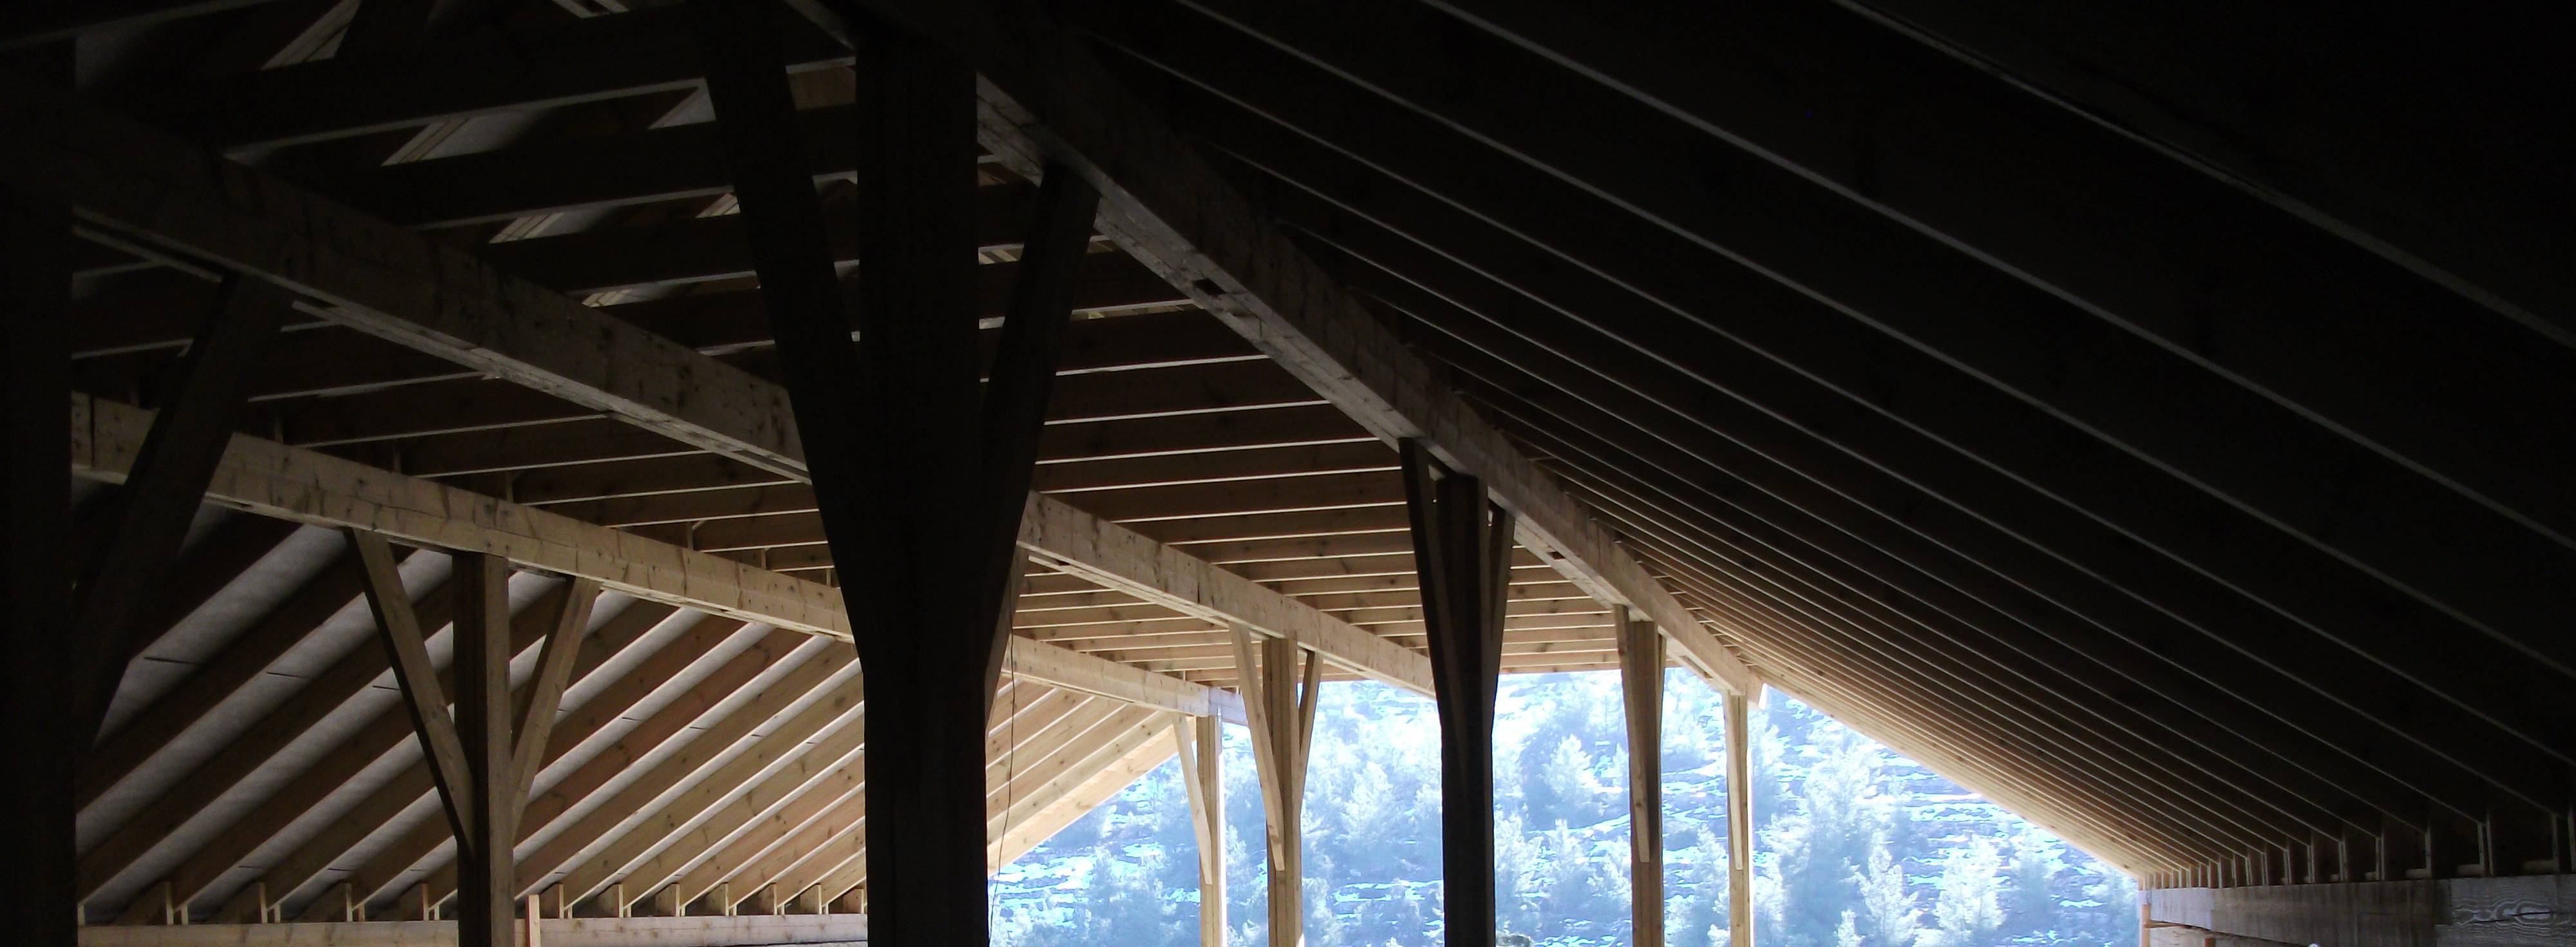 rafter systems design +79533576014